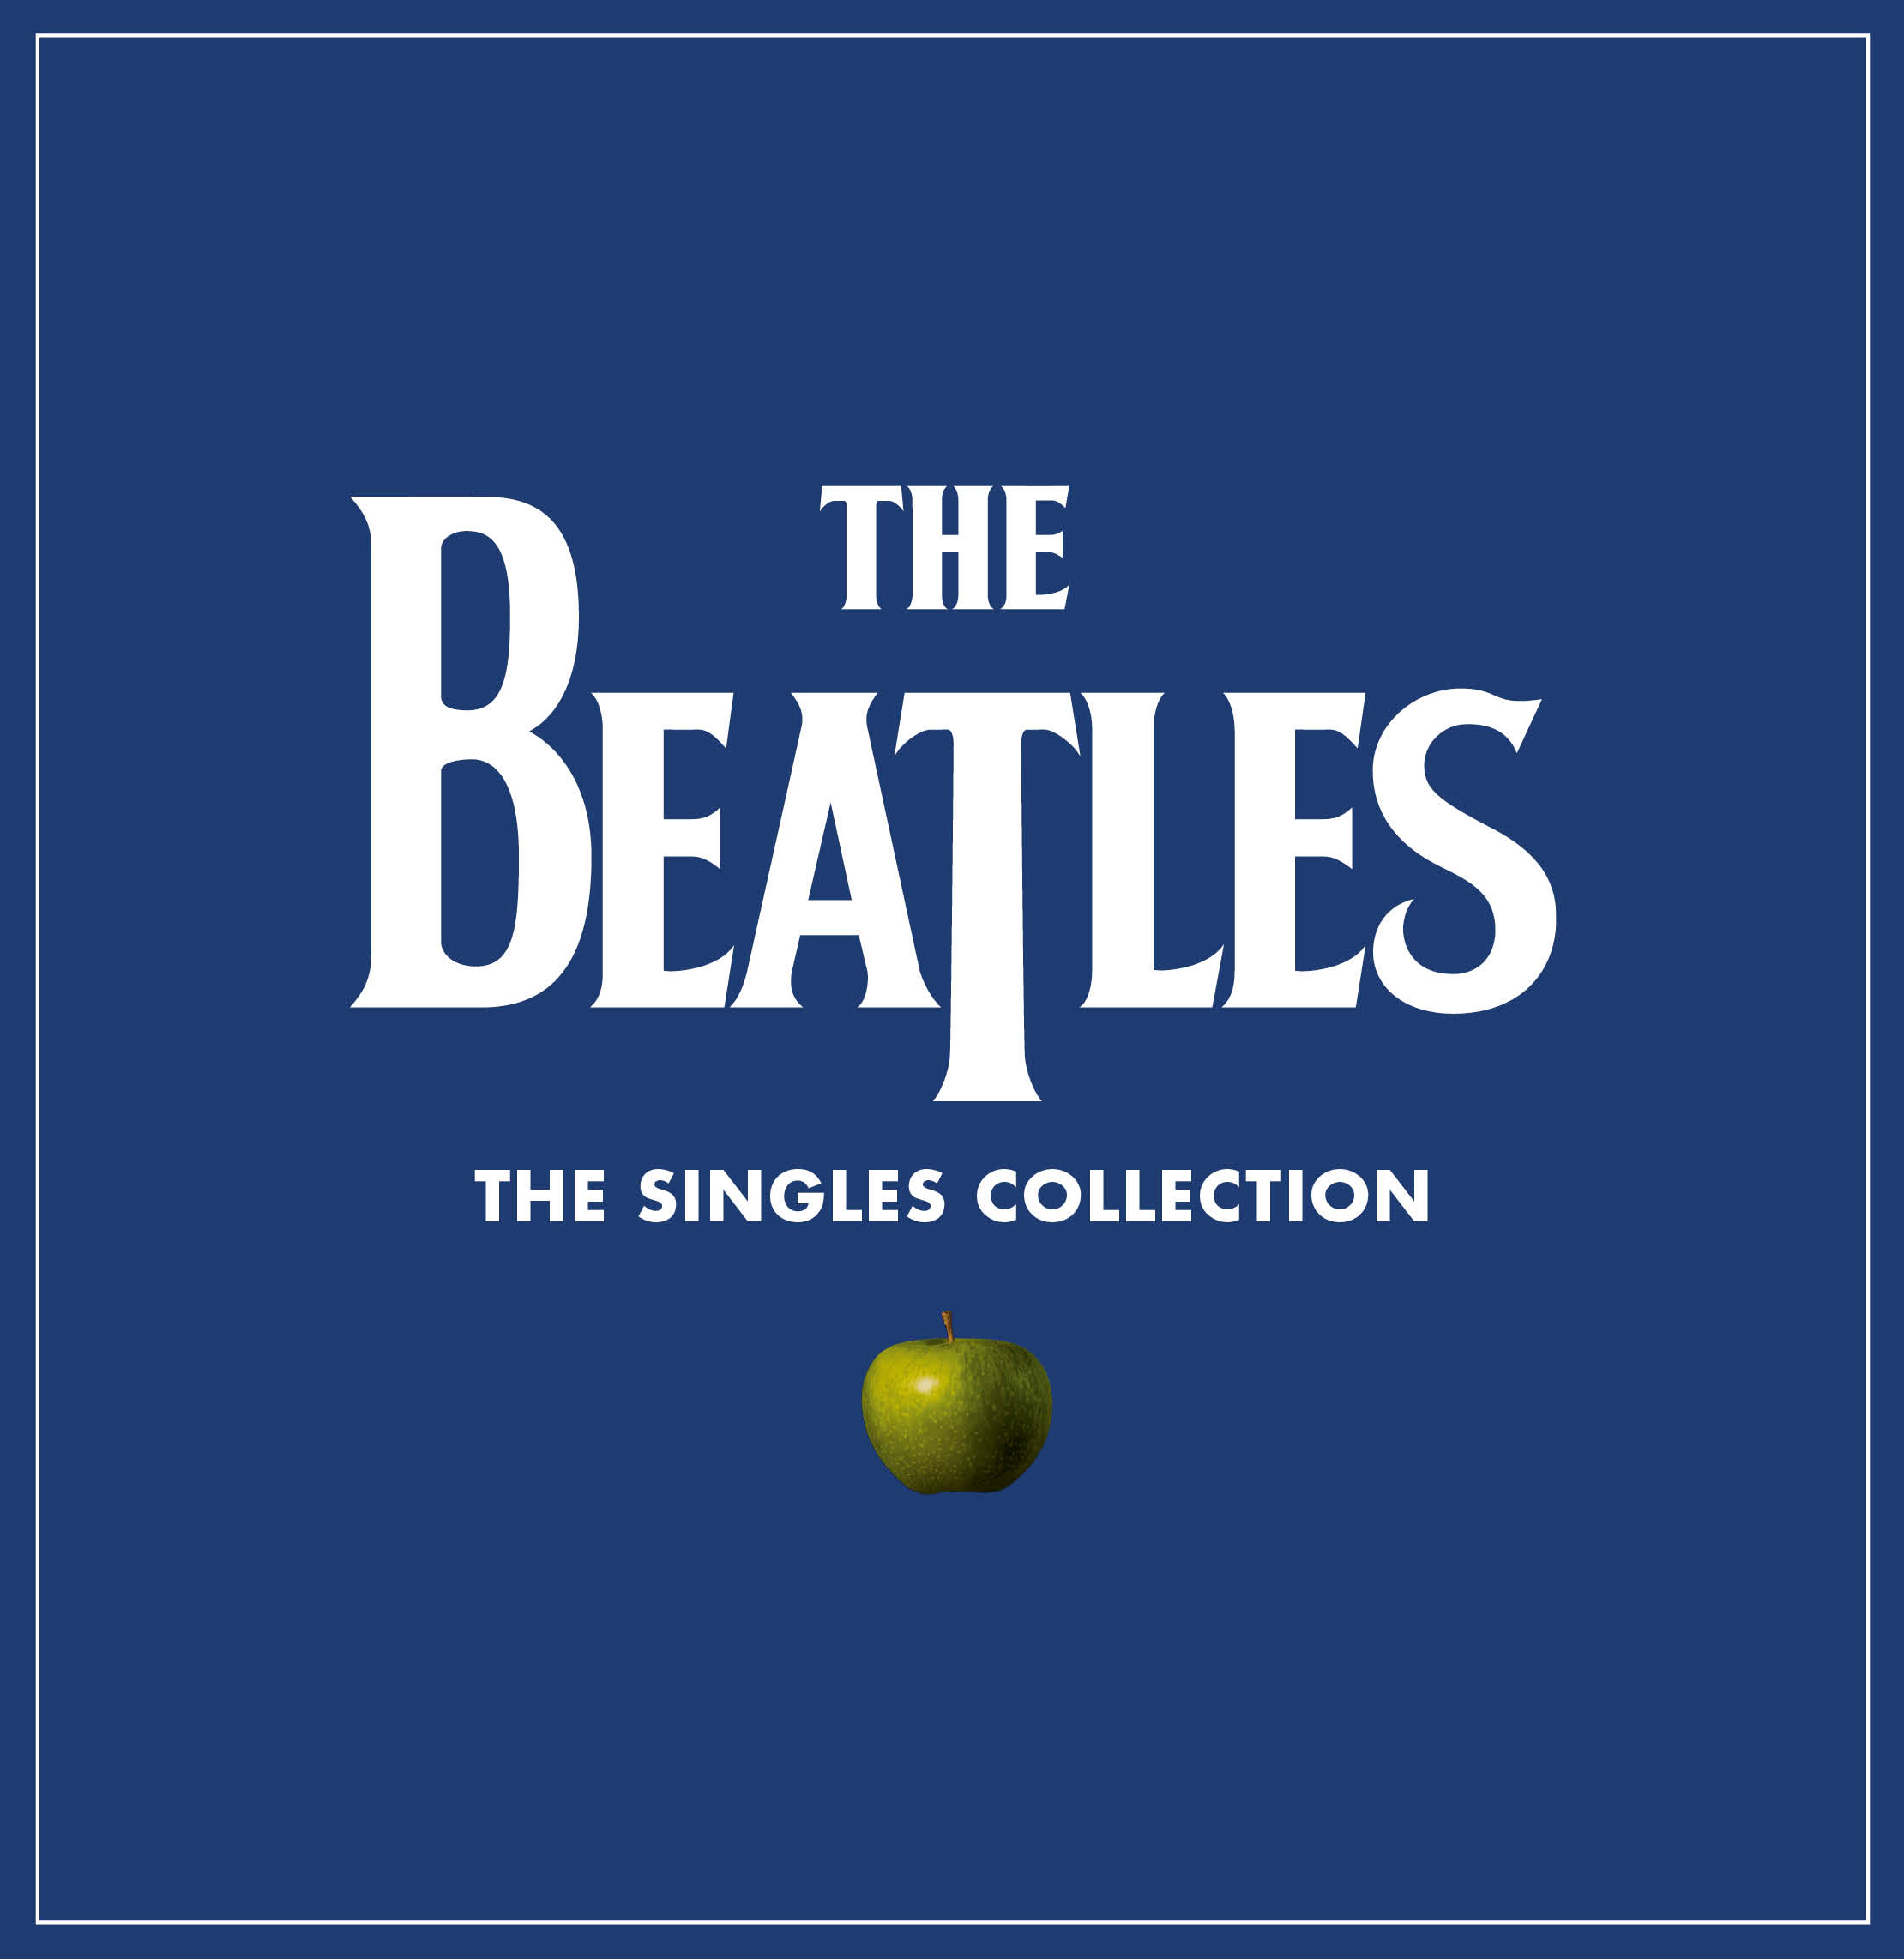 CD Shop - BEATLES THE BEATLES SINGLES